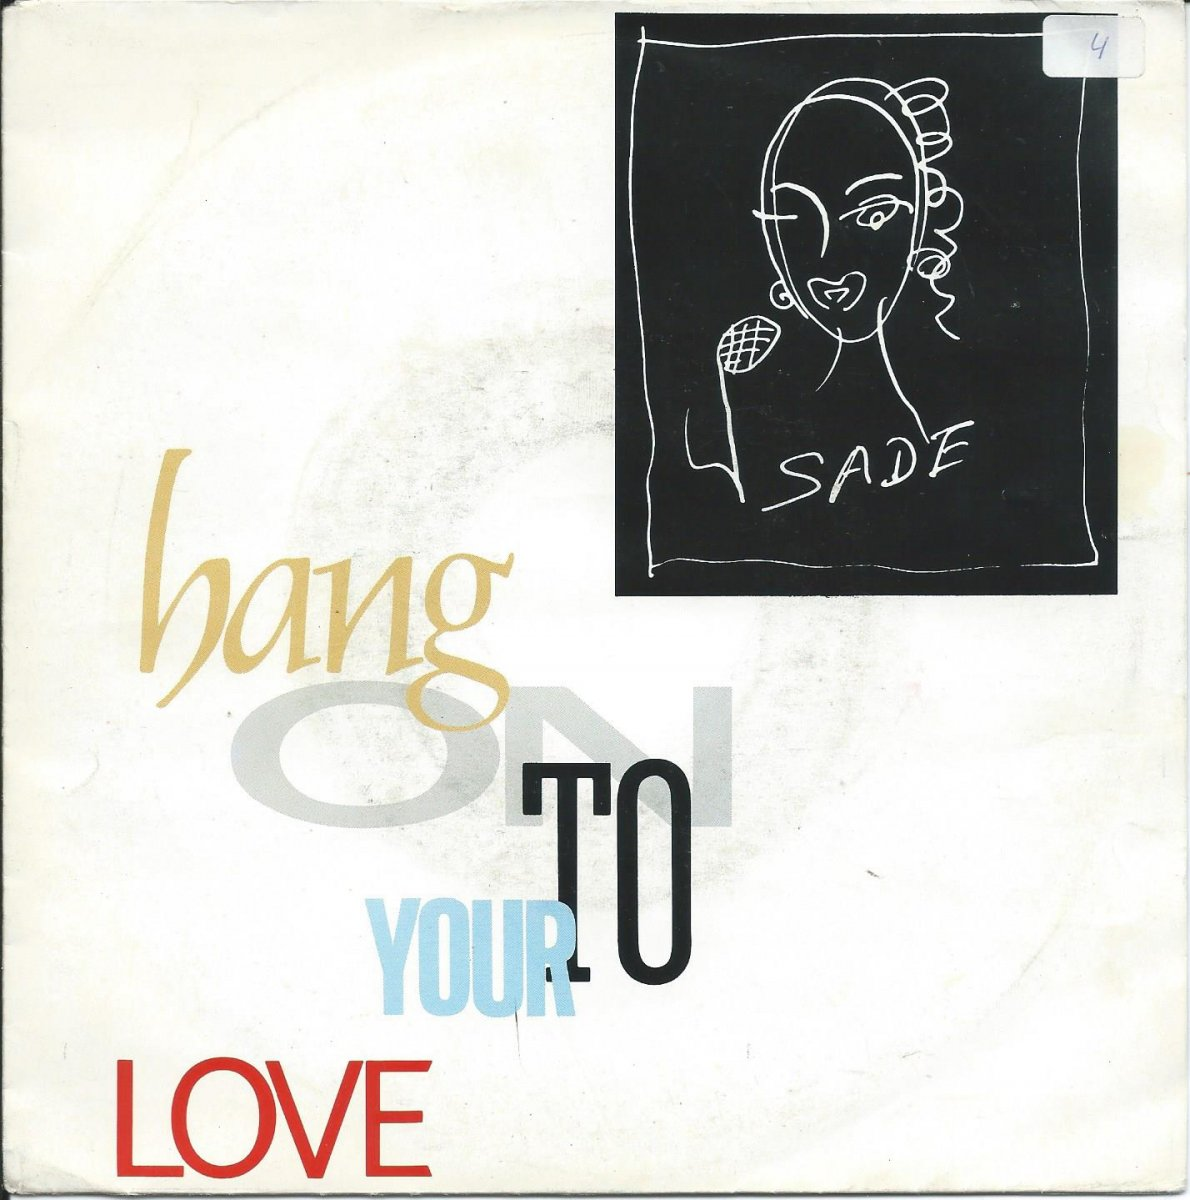 SADE / HANG ON TO YOUR LOVE / SHOULD I LOVE YOU (7